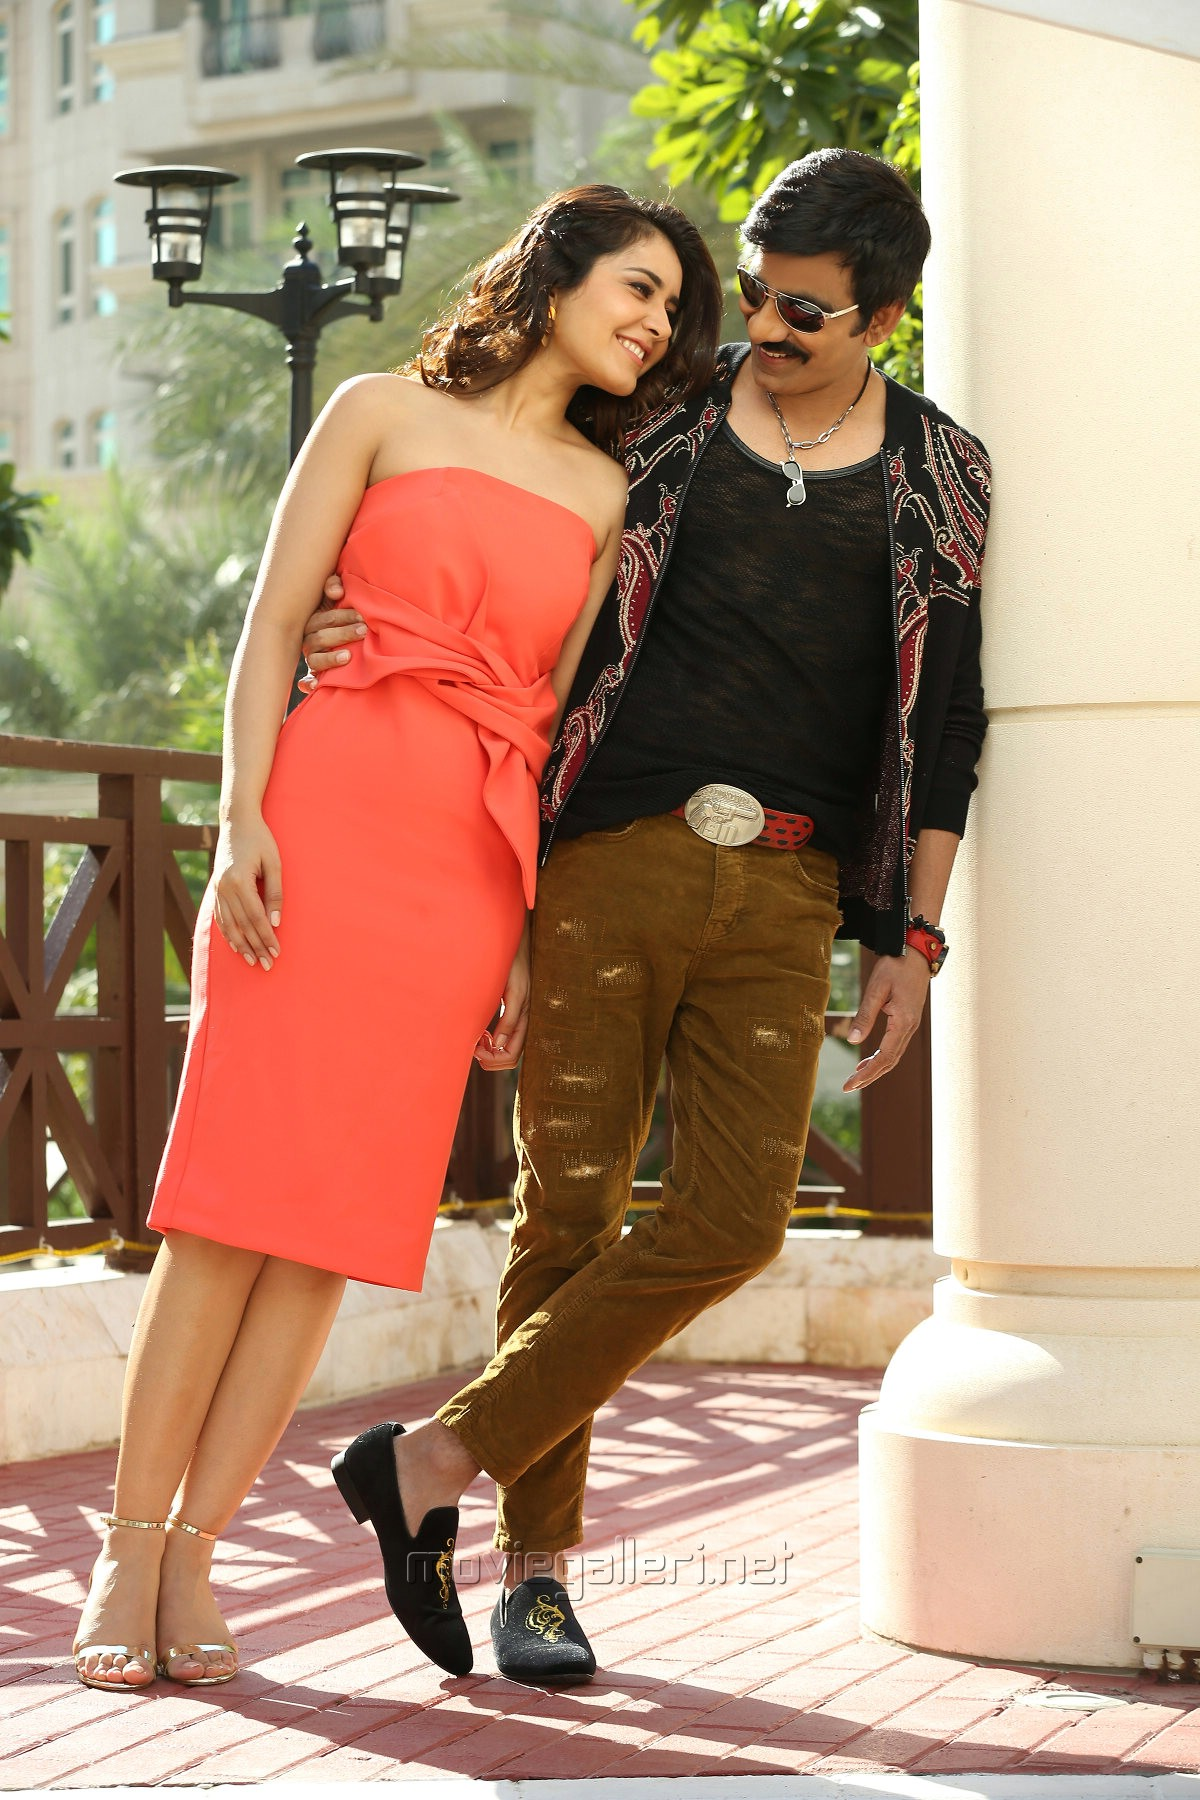 Ravi Teja & Raashi Khanna in Touch Chesi Chudu Movie Images HD